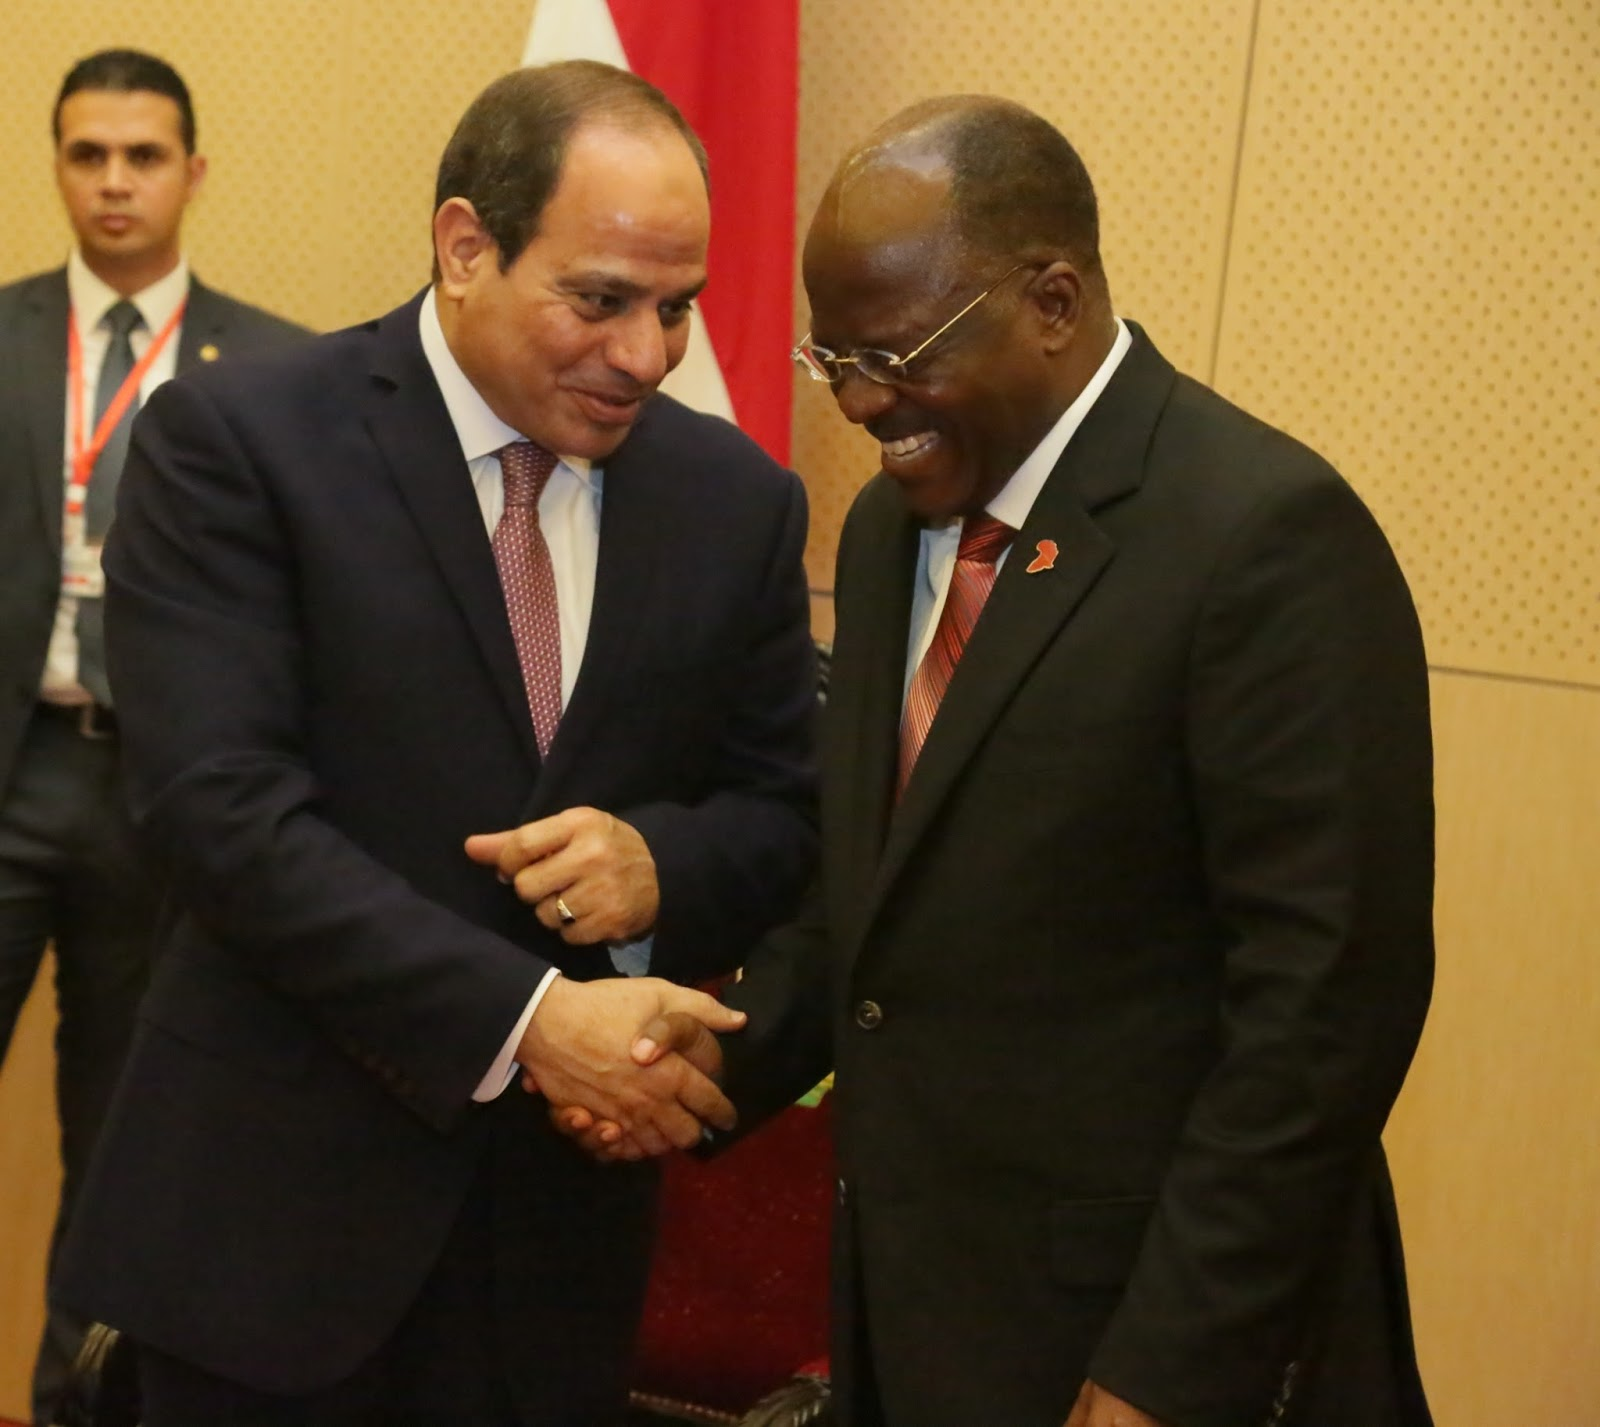 abdel fattah el sisi thesis Watch video mr govrin is a fluent arabic speaker who wrote his doctoral thesis on arab liberalism  and abdel fattah el-sisi, the egyptian president,.